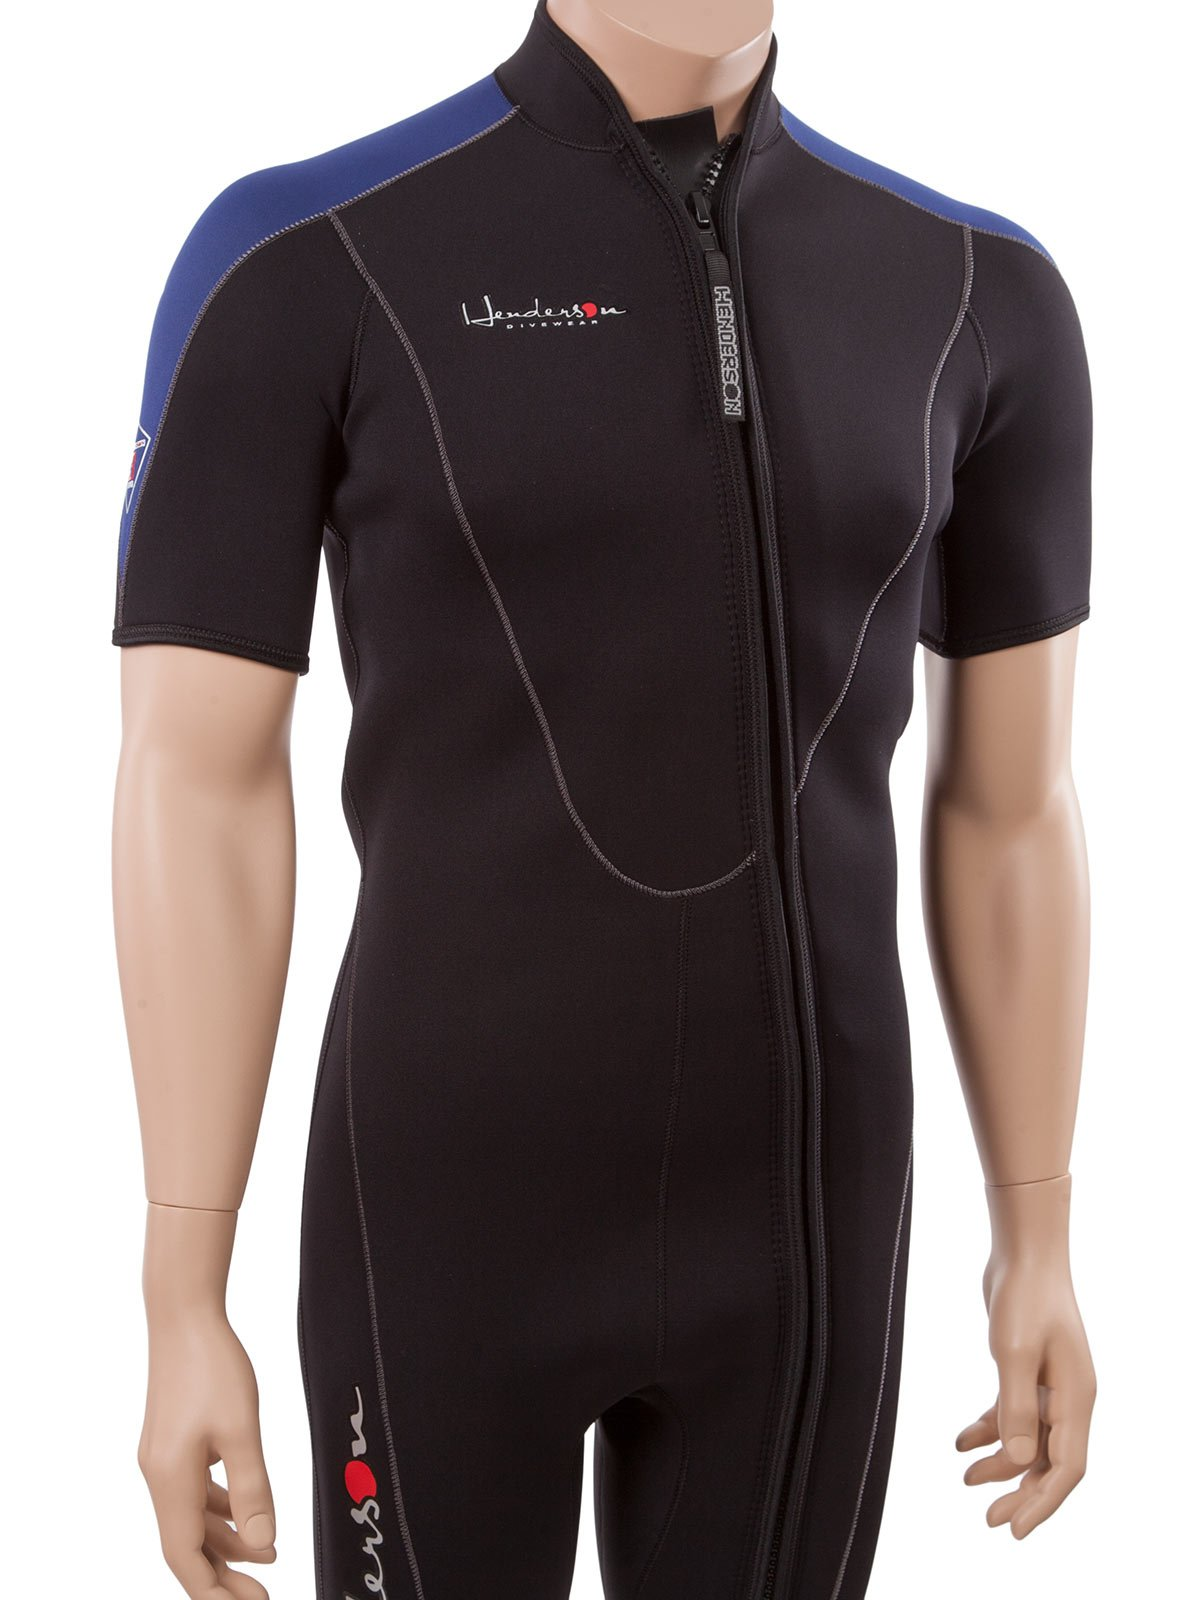 Henderson Thermoprene Mens 3mm Front Zip Shorty Wetsuit with Big & Tall Sizes Mens M-Tall Black/blue by Henderson